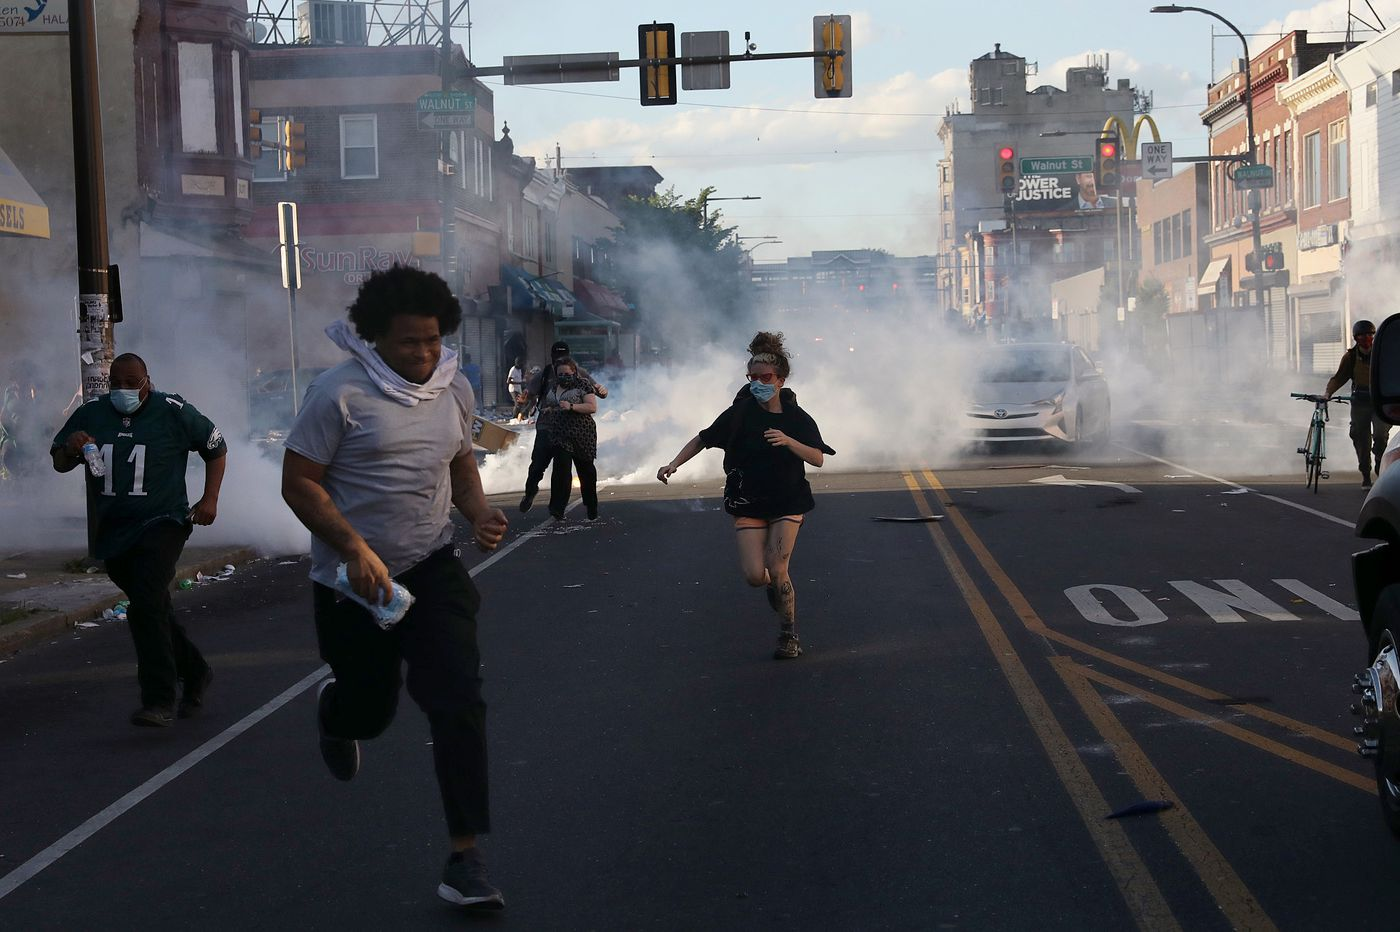 Most major cities haven't banned tear gas during protests. Will Philly be different?